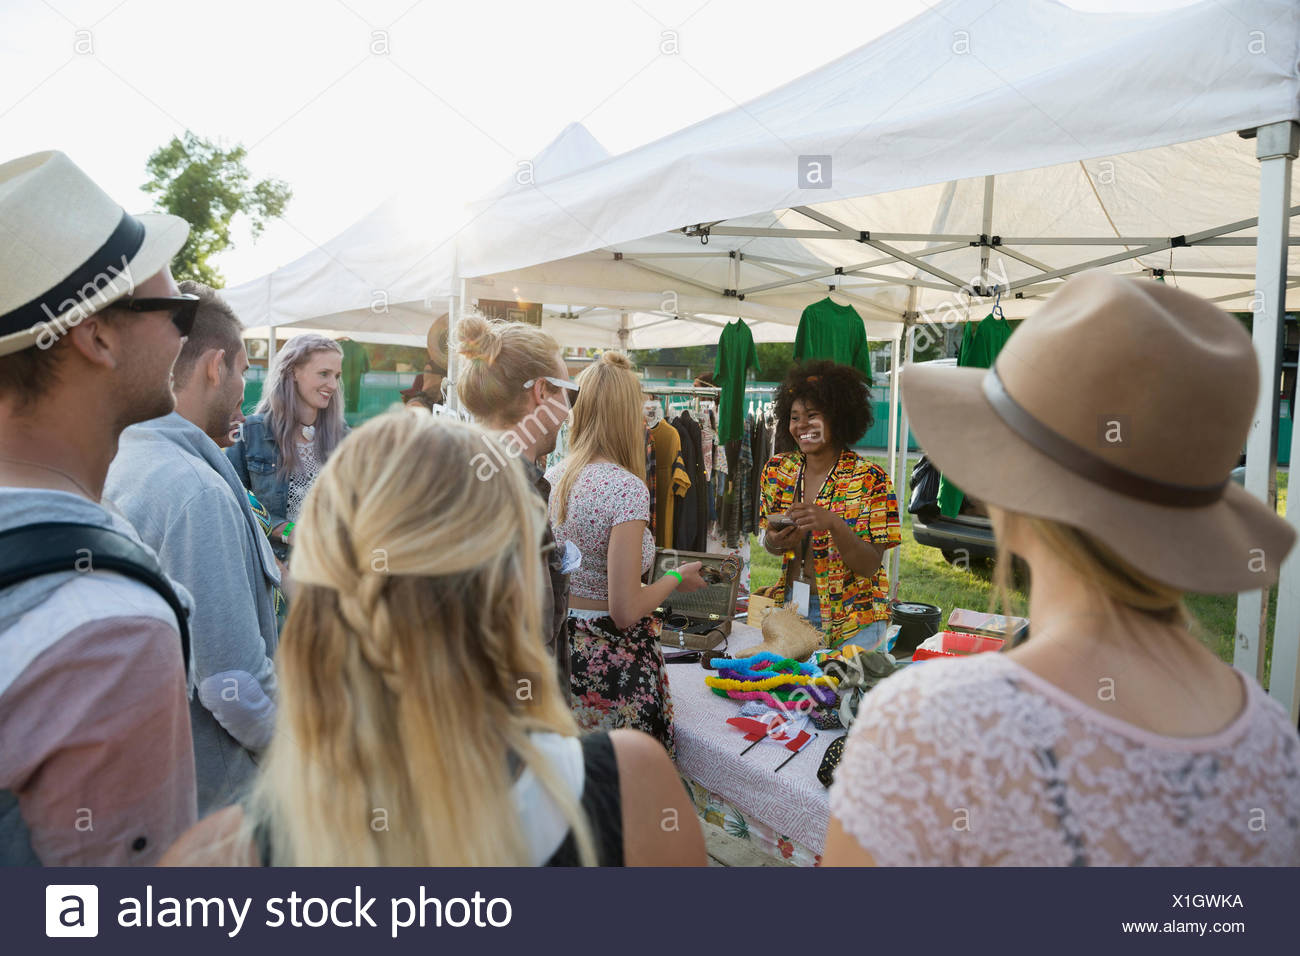 Young people at vendor booth at summer music festival - Stock Image